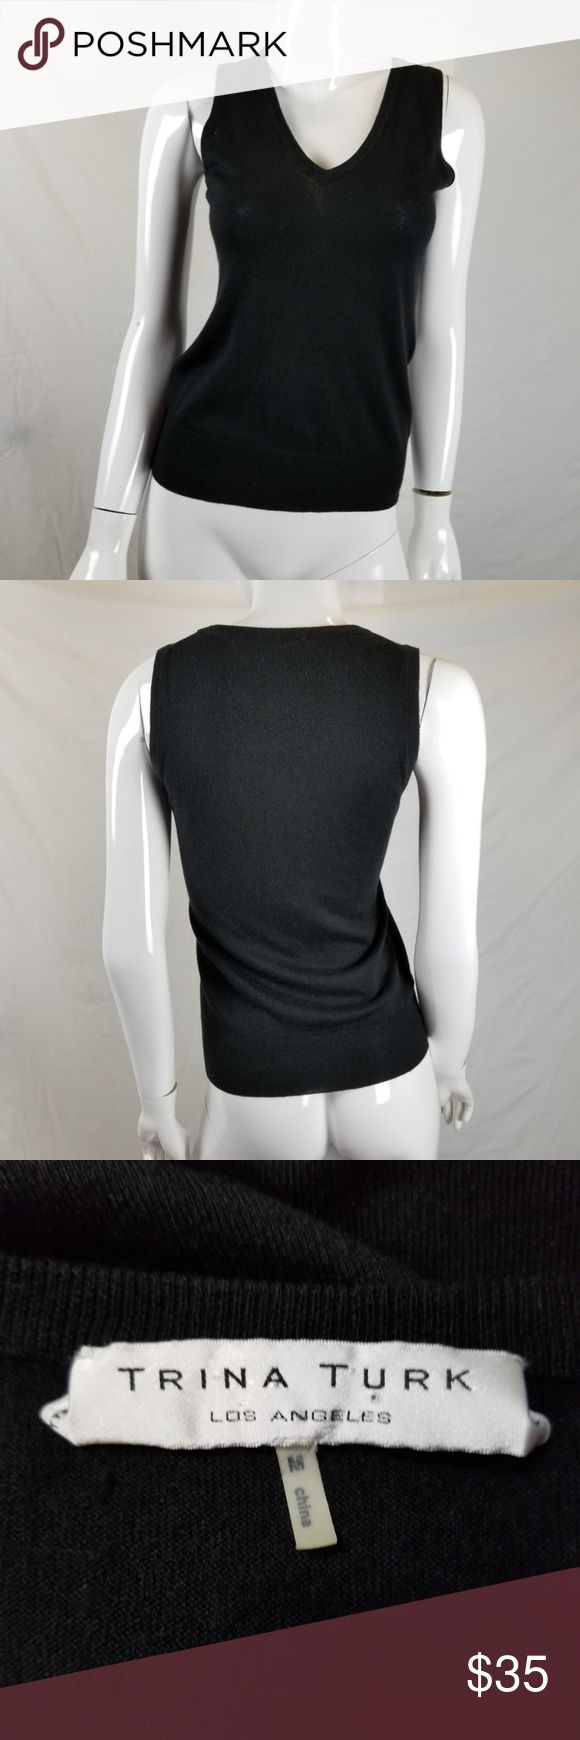 """Trina Turk Tank Top Black Silk Cashmere Blend Trina Turk Tank Top Black Silk Cashmere Blend Blouse V Neck Sz M Sleeveless  Excellent Condition!  Please see pictures for additional details.  Measurements (all approximate with garment laying flat)  Size: M Bust: 16.5"""" Length: 24""""  Ship within 24 hours  All items are cross-posted, if they sell on another platform I will delete this listing. All items are shipped securely packed. Trina Turk Tops Tank Tops"""